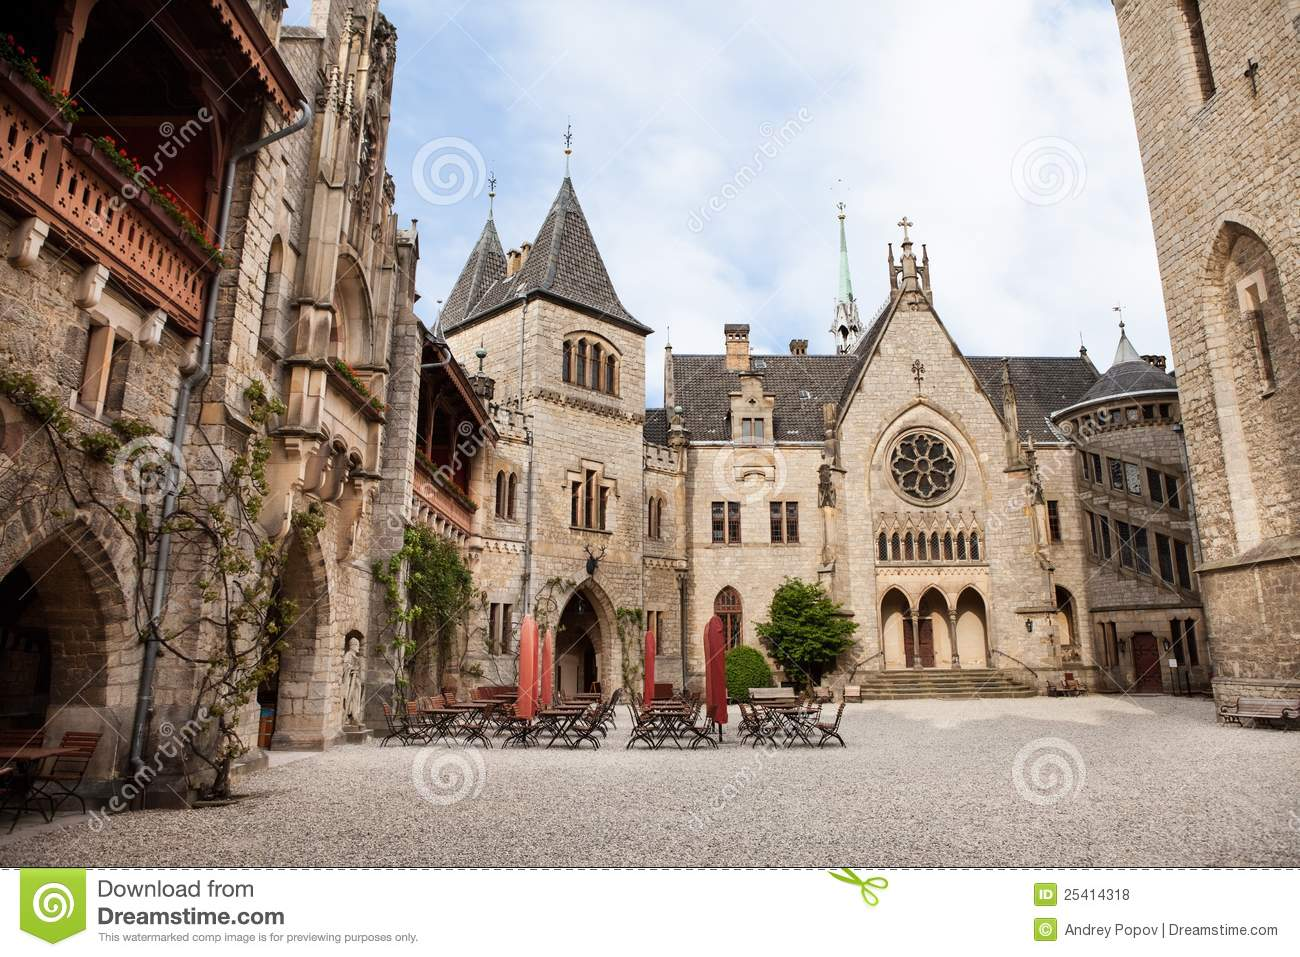 Marienburg Castle, Germany,,, Royalty Free Stock Photos.